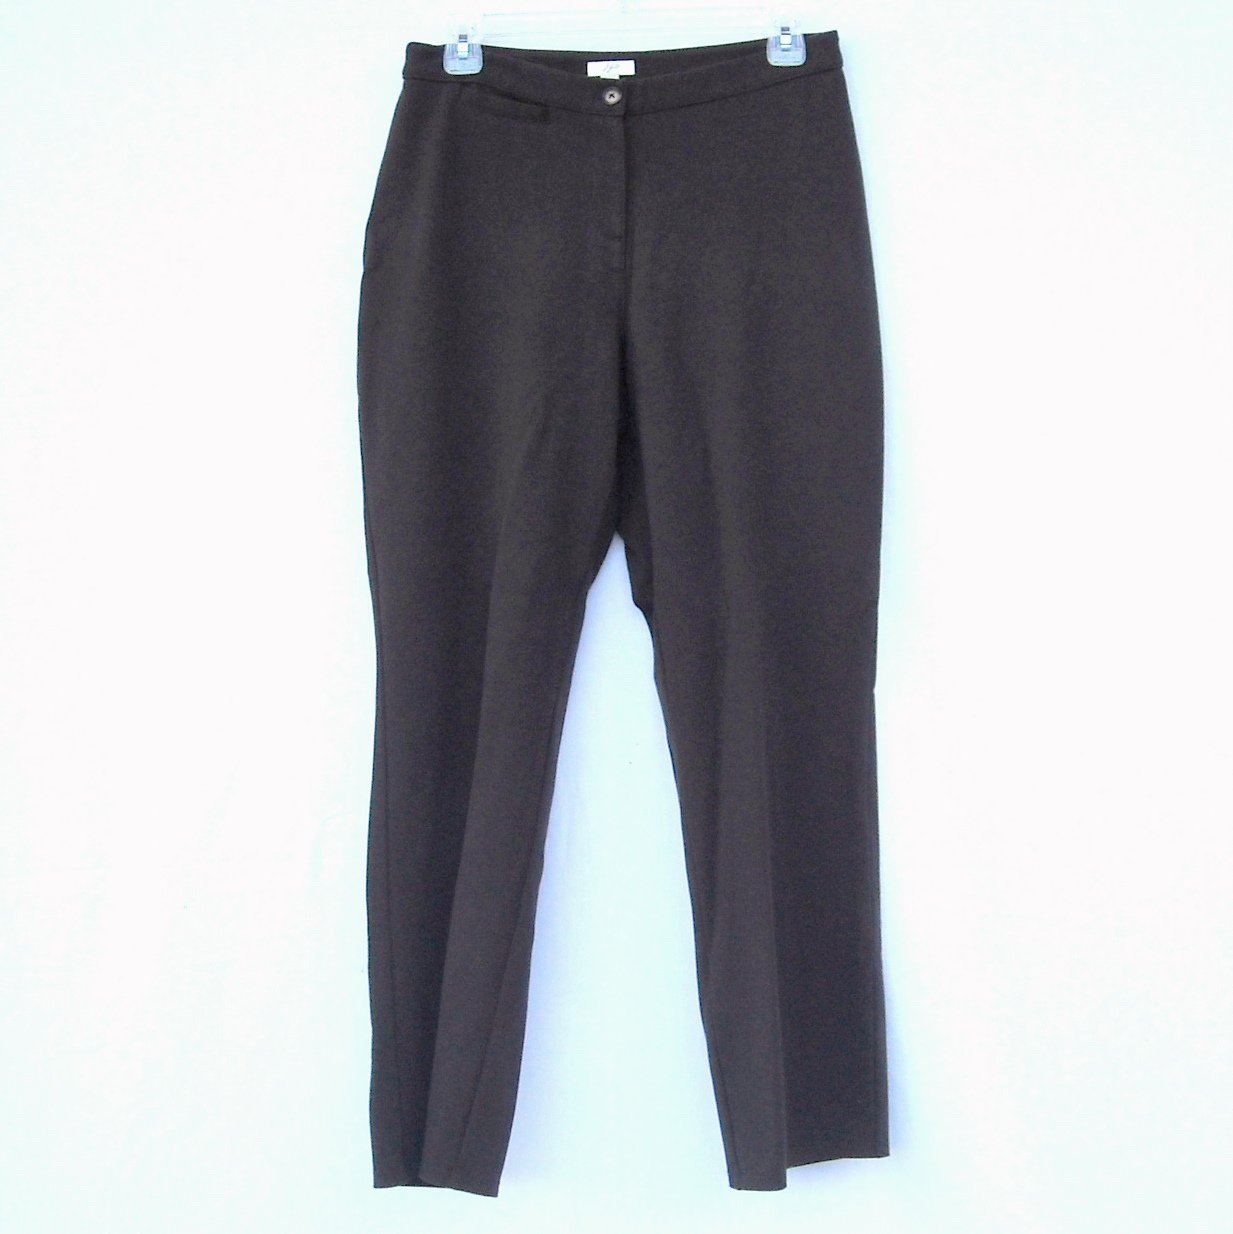 J Jill Stretch womens dark brown pants size 6P